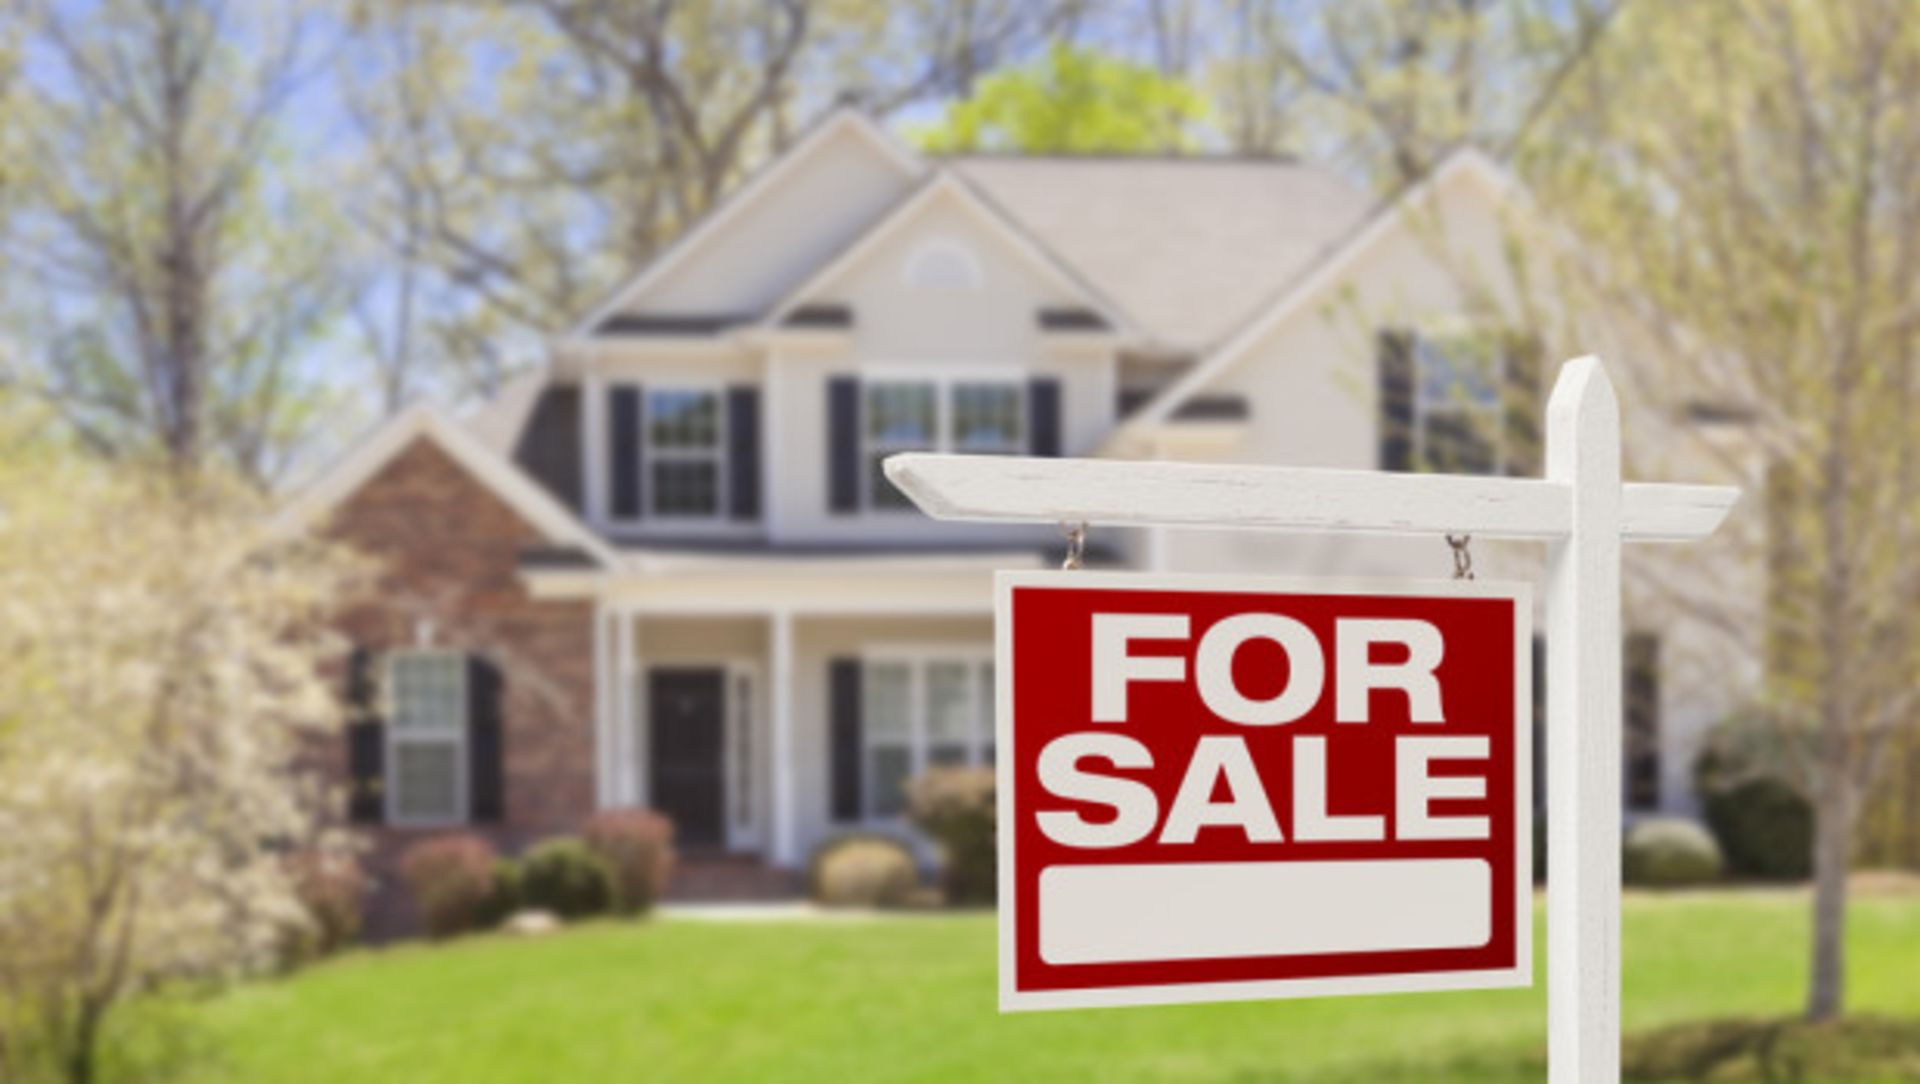 The First Step for Home Buyers